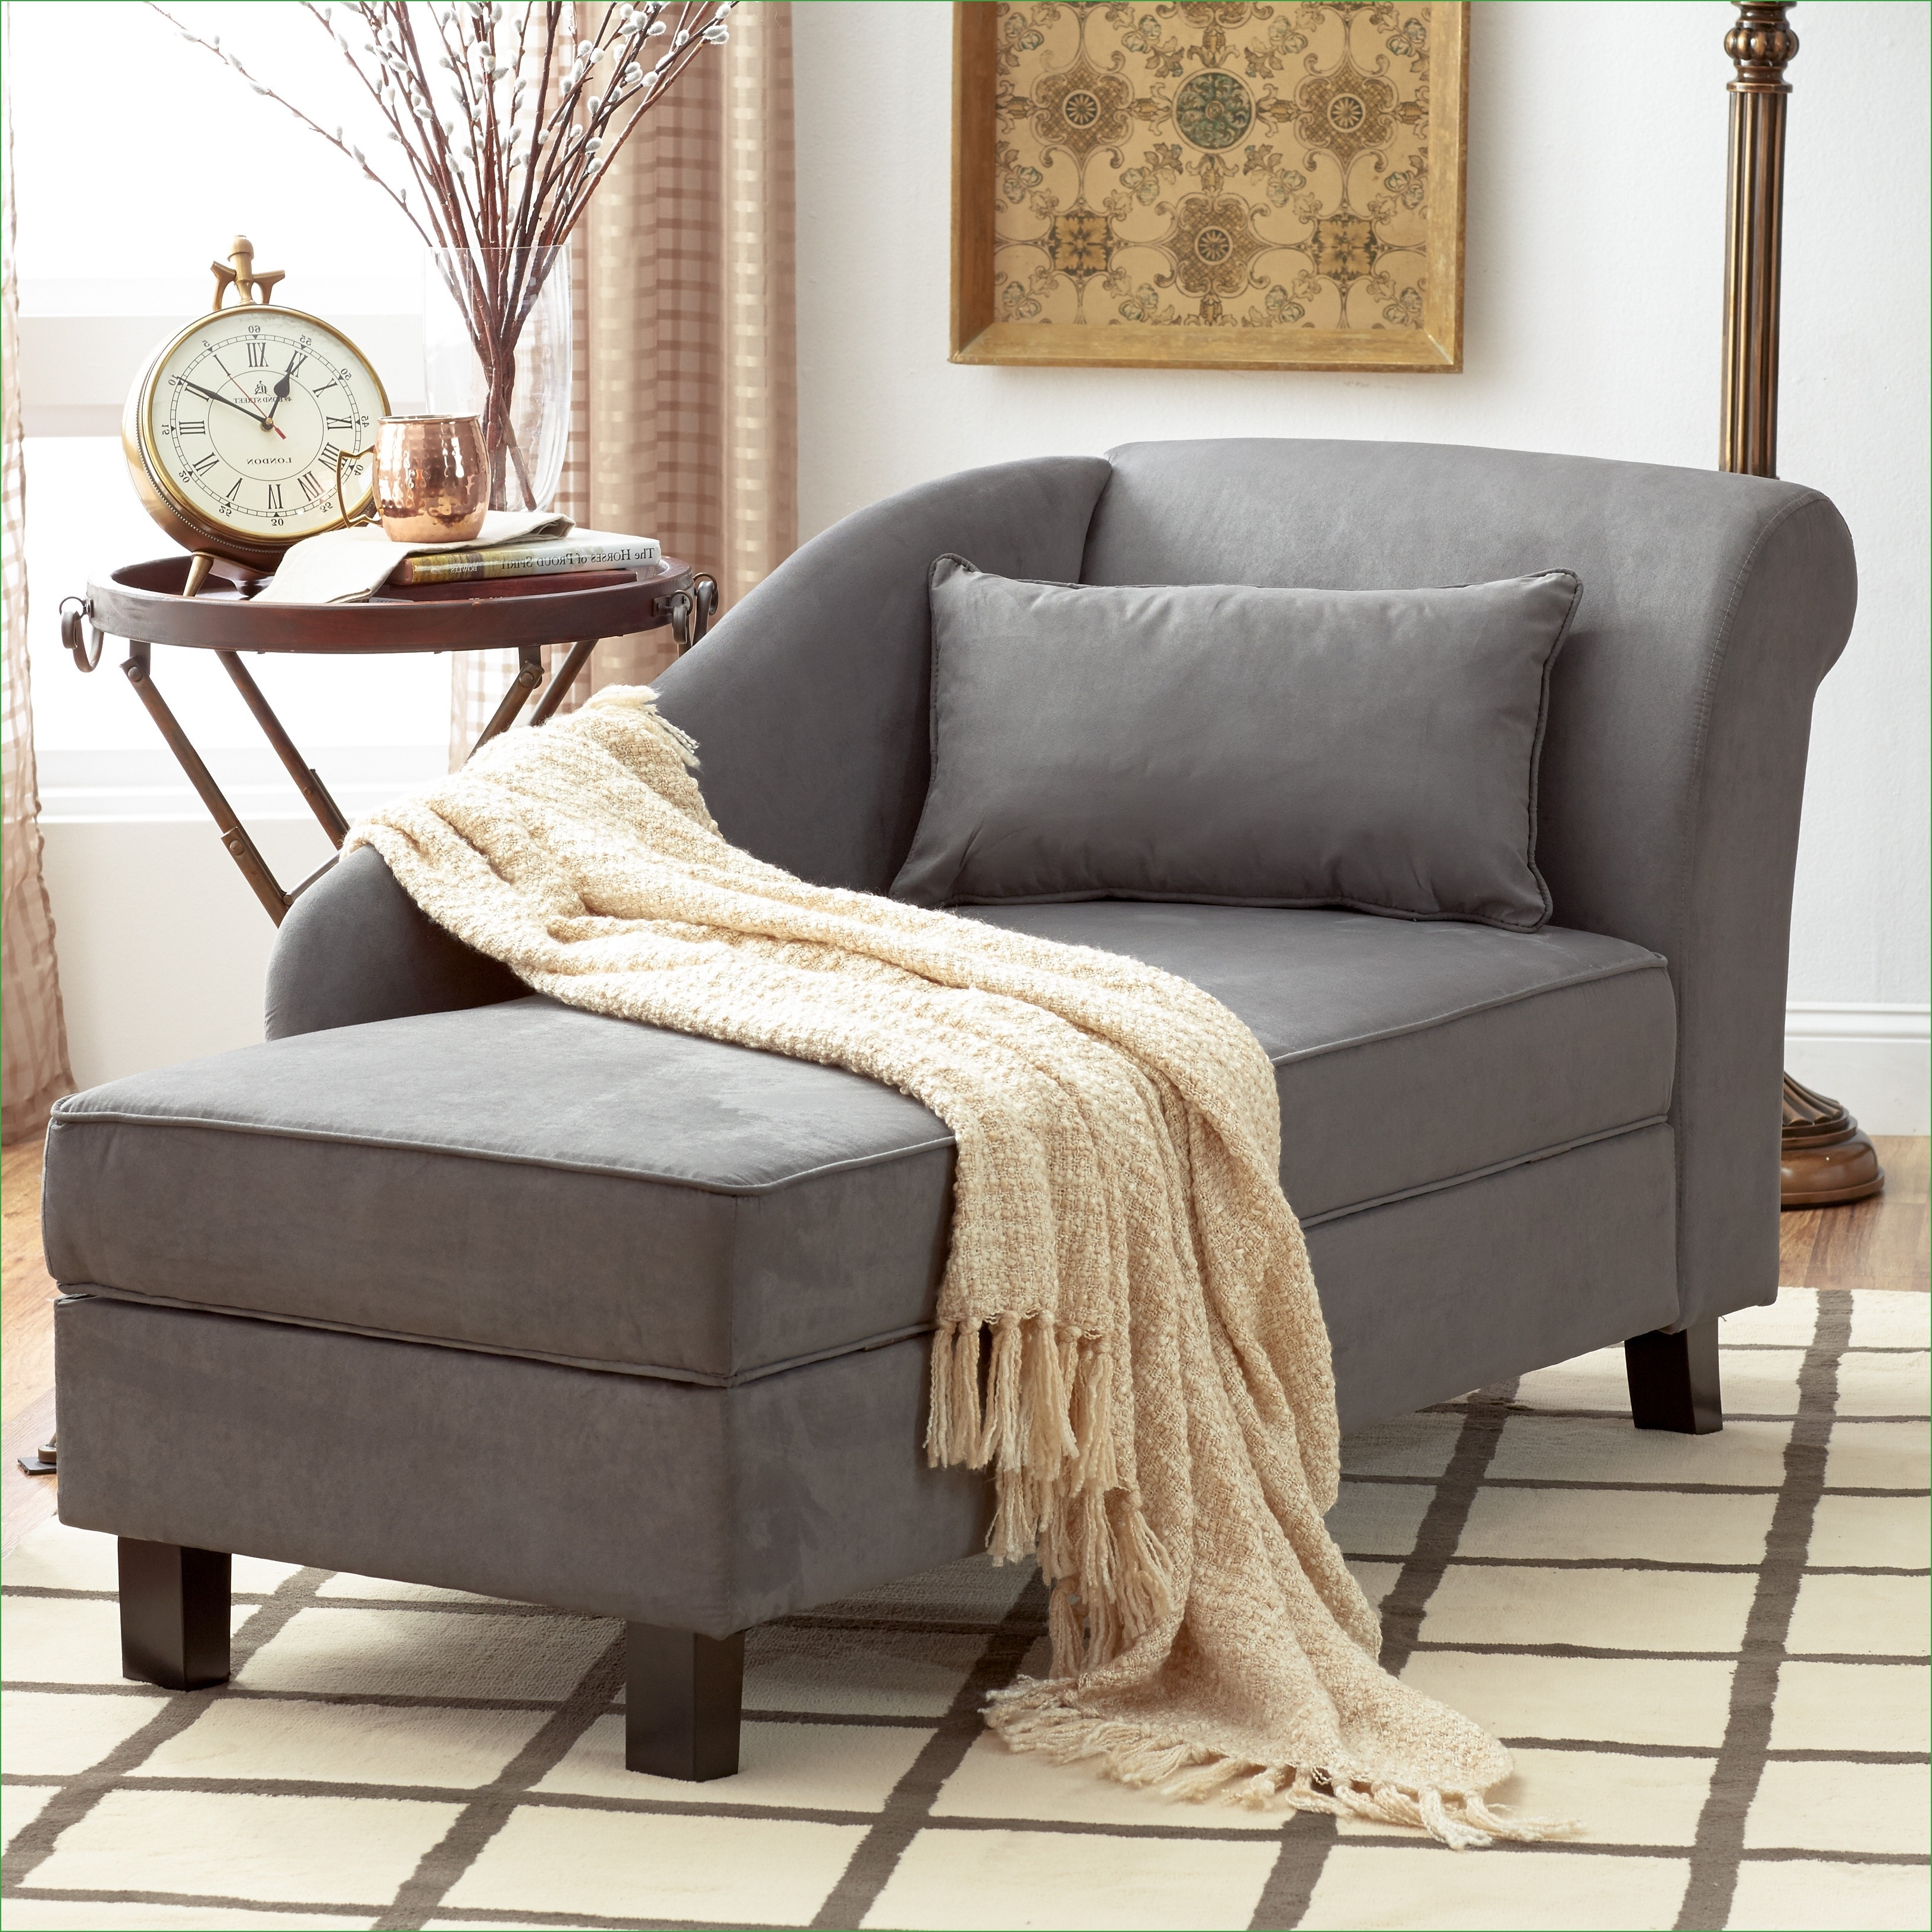 Best And Newest Lounge Chair For Small Room • Lounge Chairs Ideas Regarding Chaise Lounge Chairs For Small Spaces (View 1 of 15)